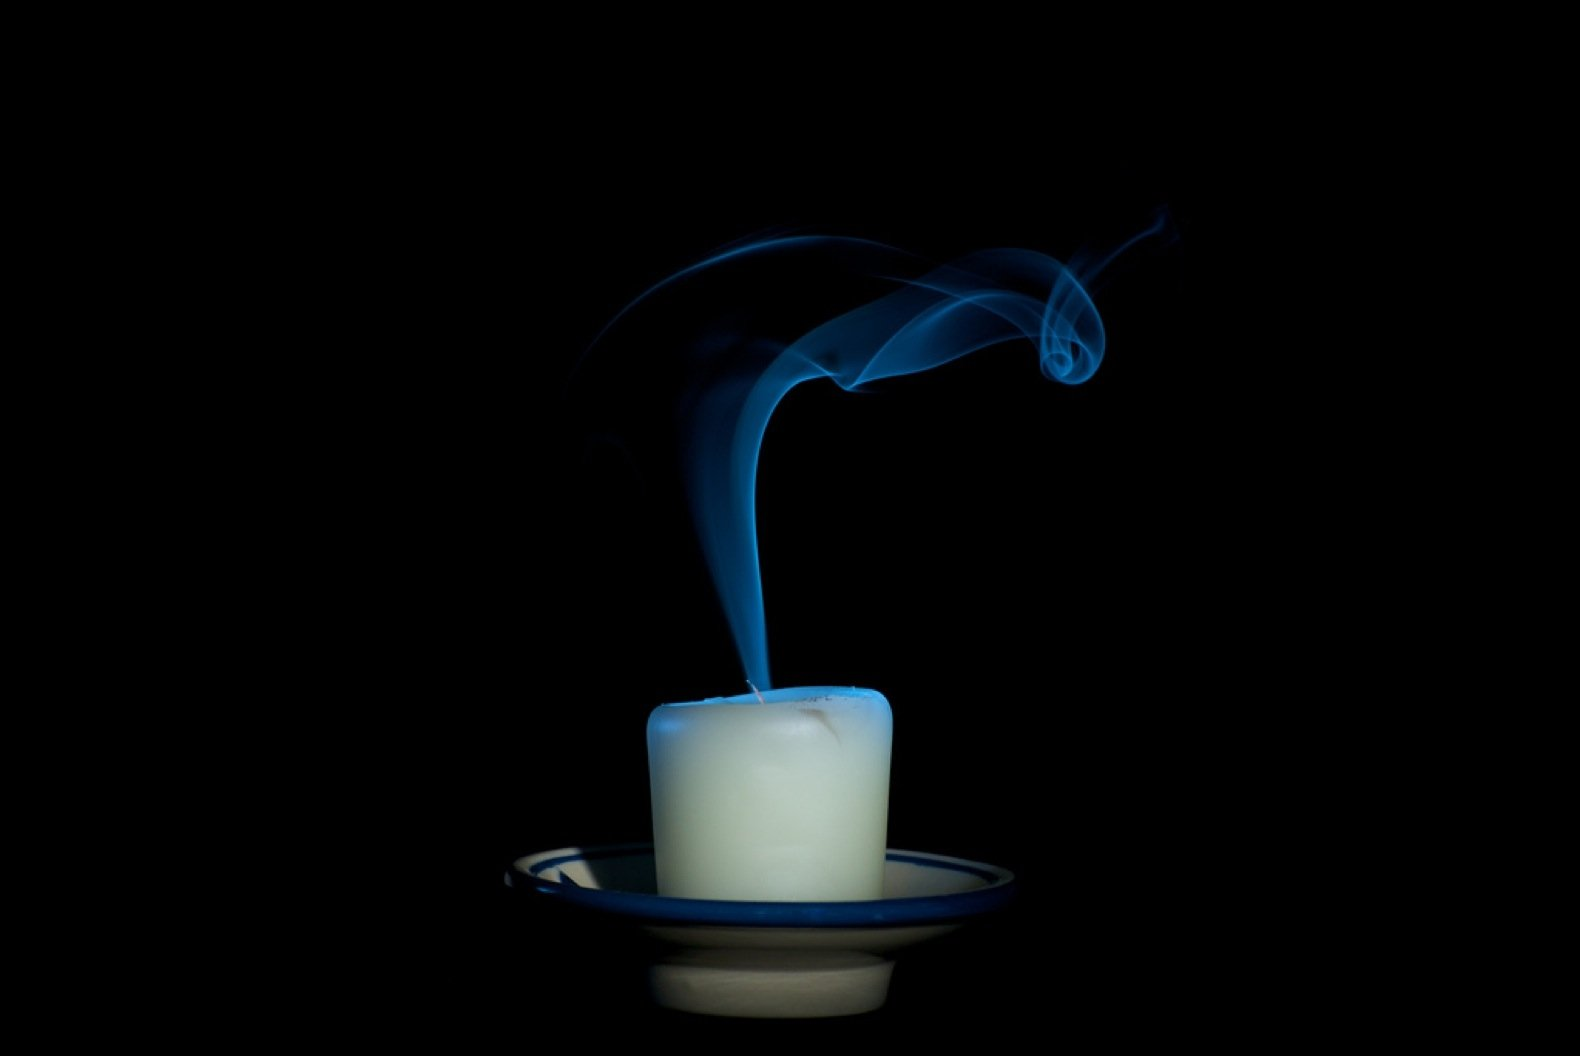 7 candle hd wallpapers | background images - wallpaper abyss